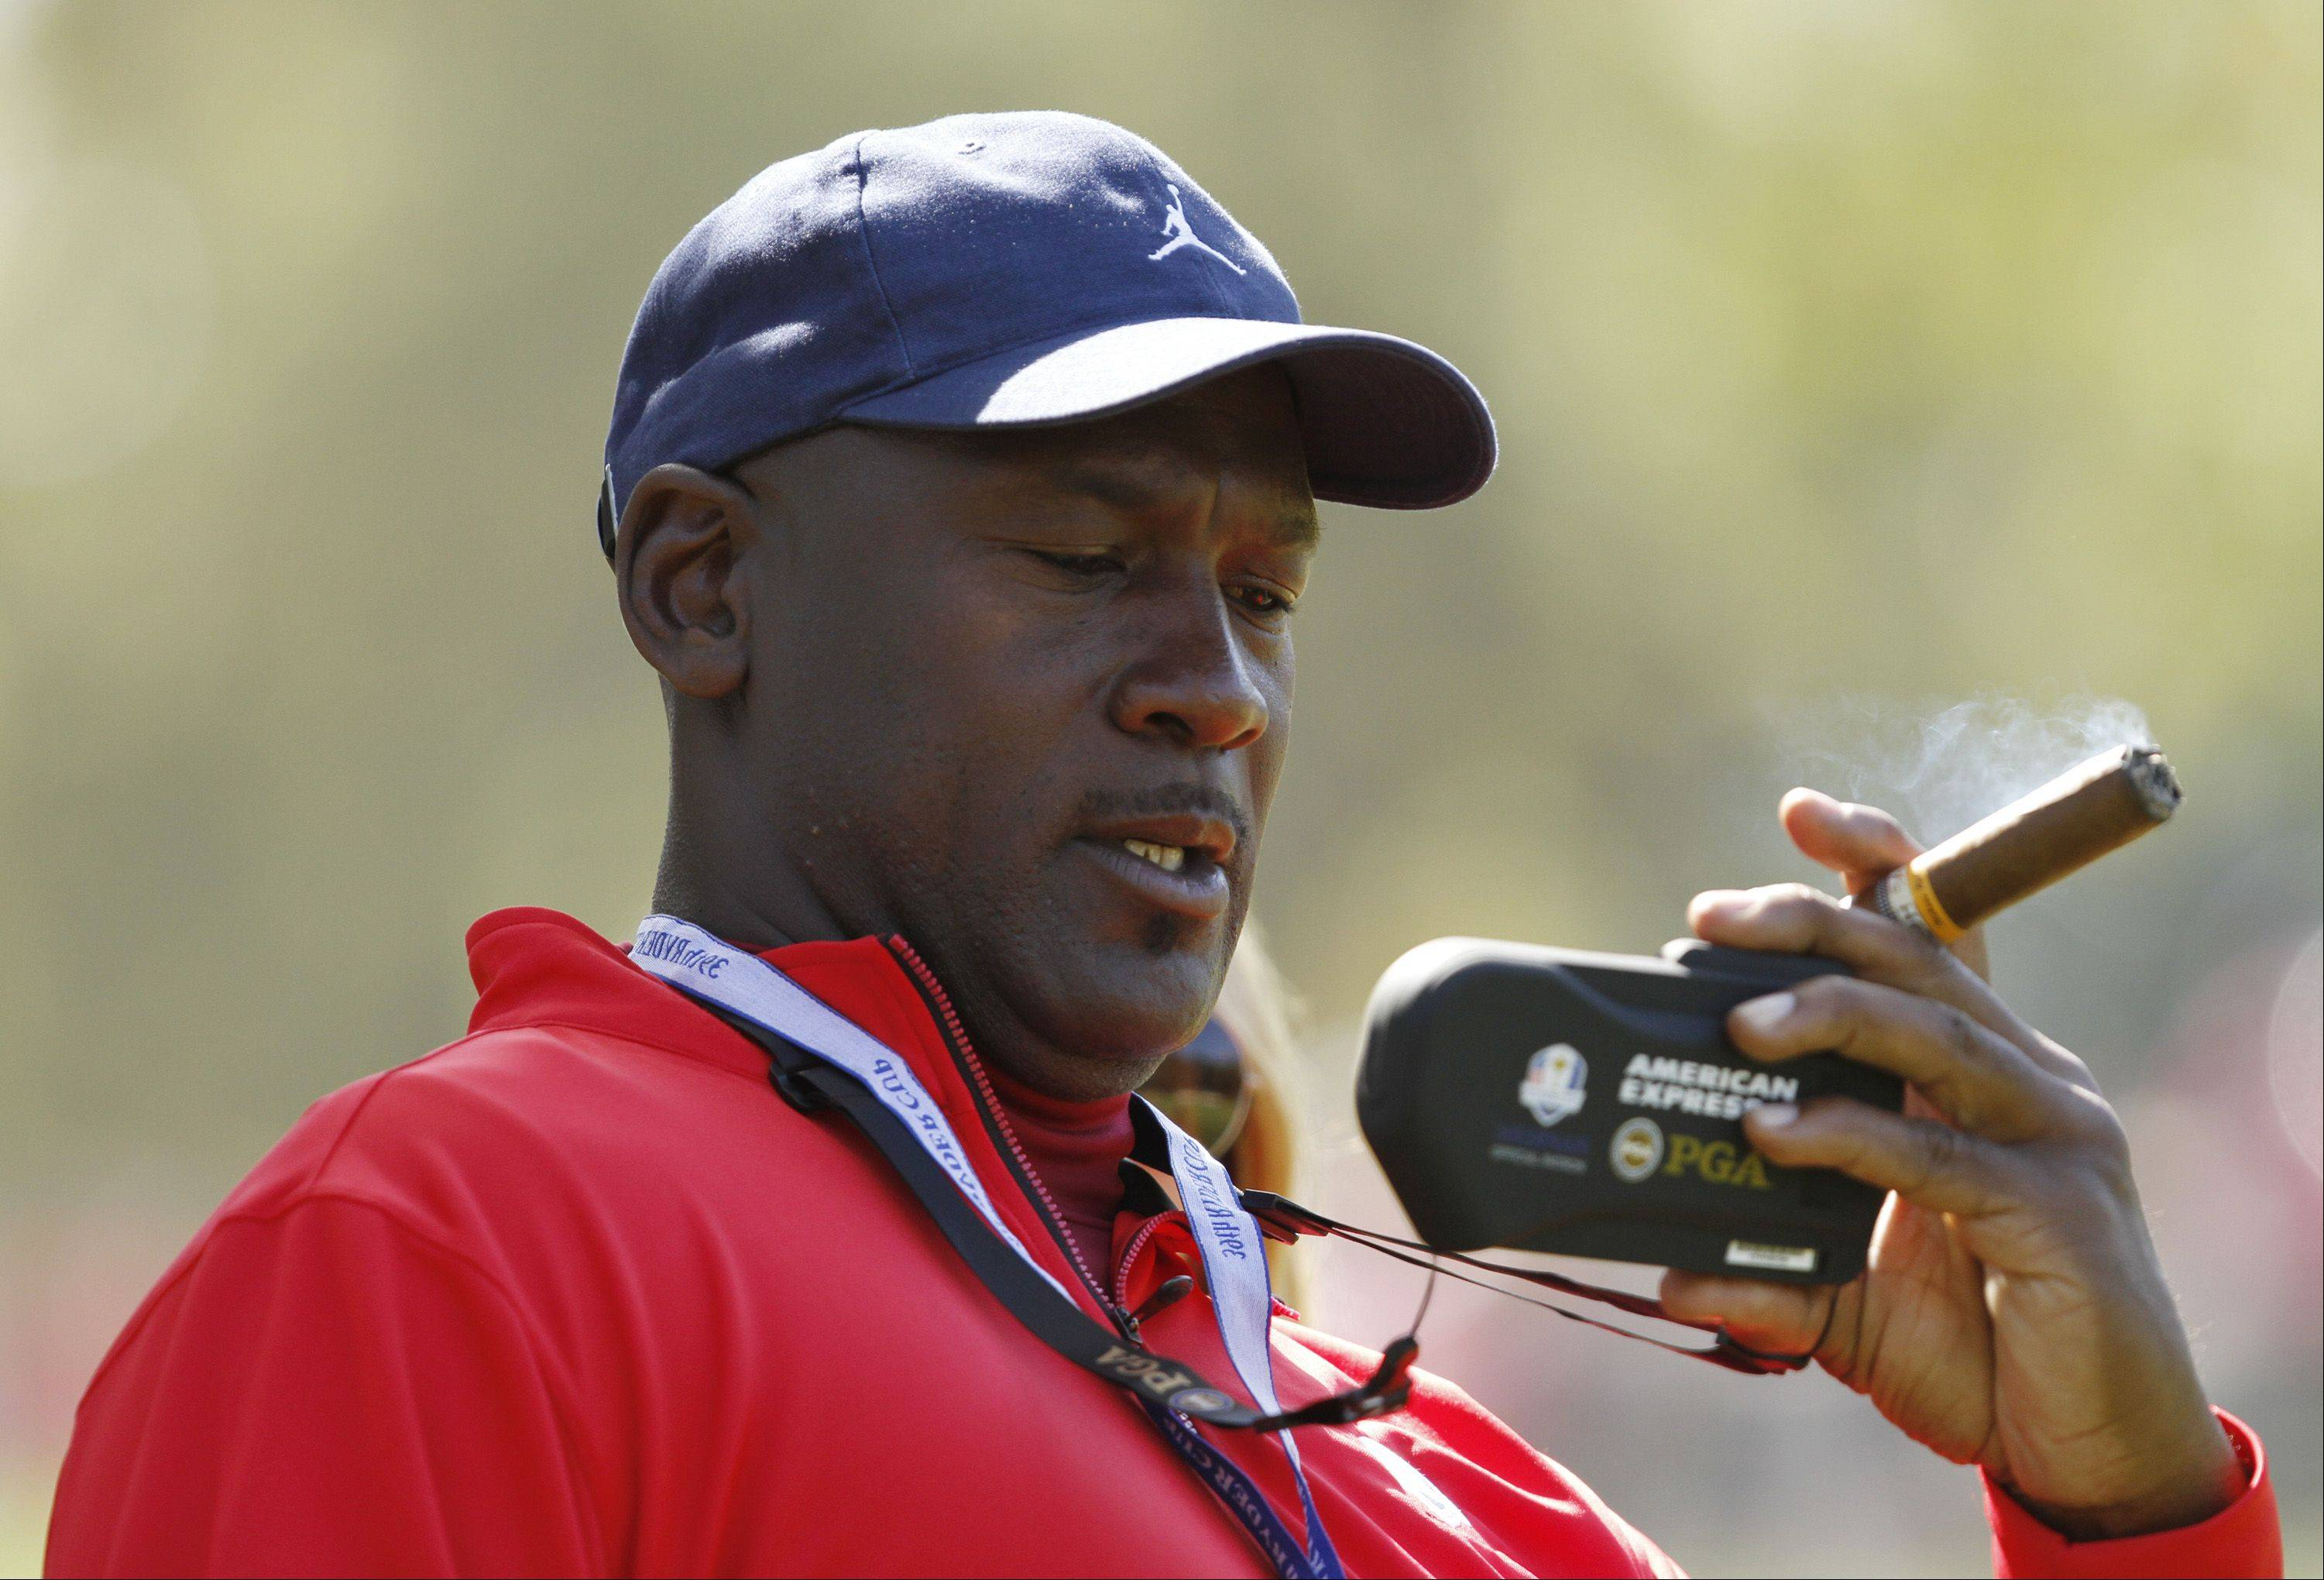 Michael Jordan watches some live action on a remote device while enjoying a cigar on the course Sunday.